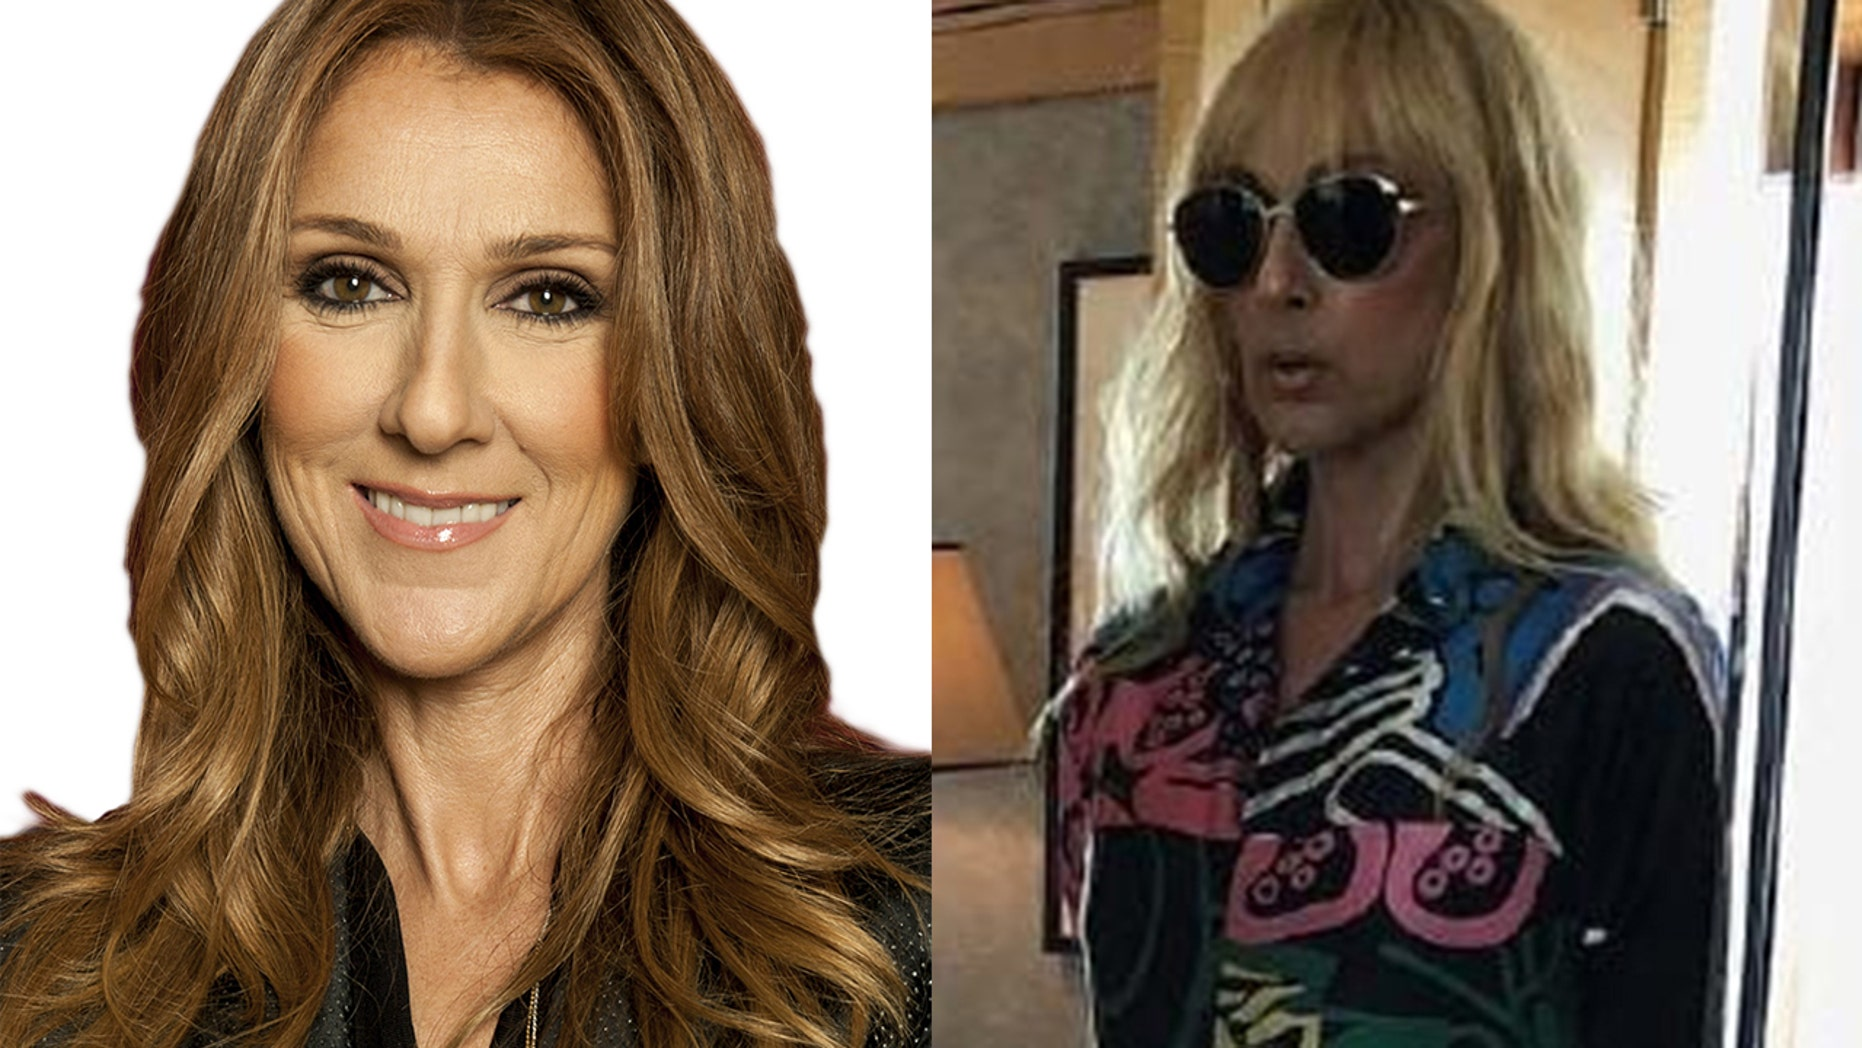 Celine Dion shocked fans with her new look, right.